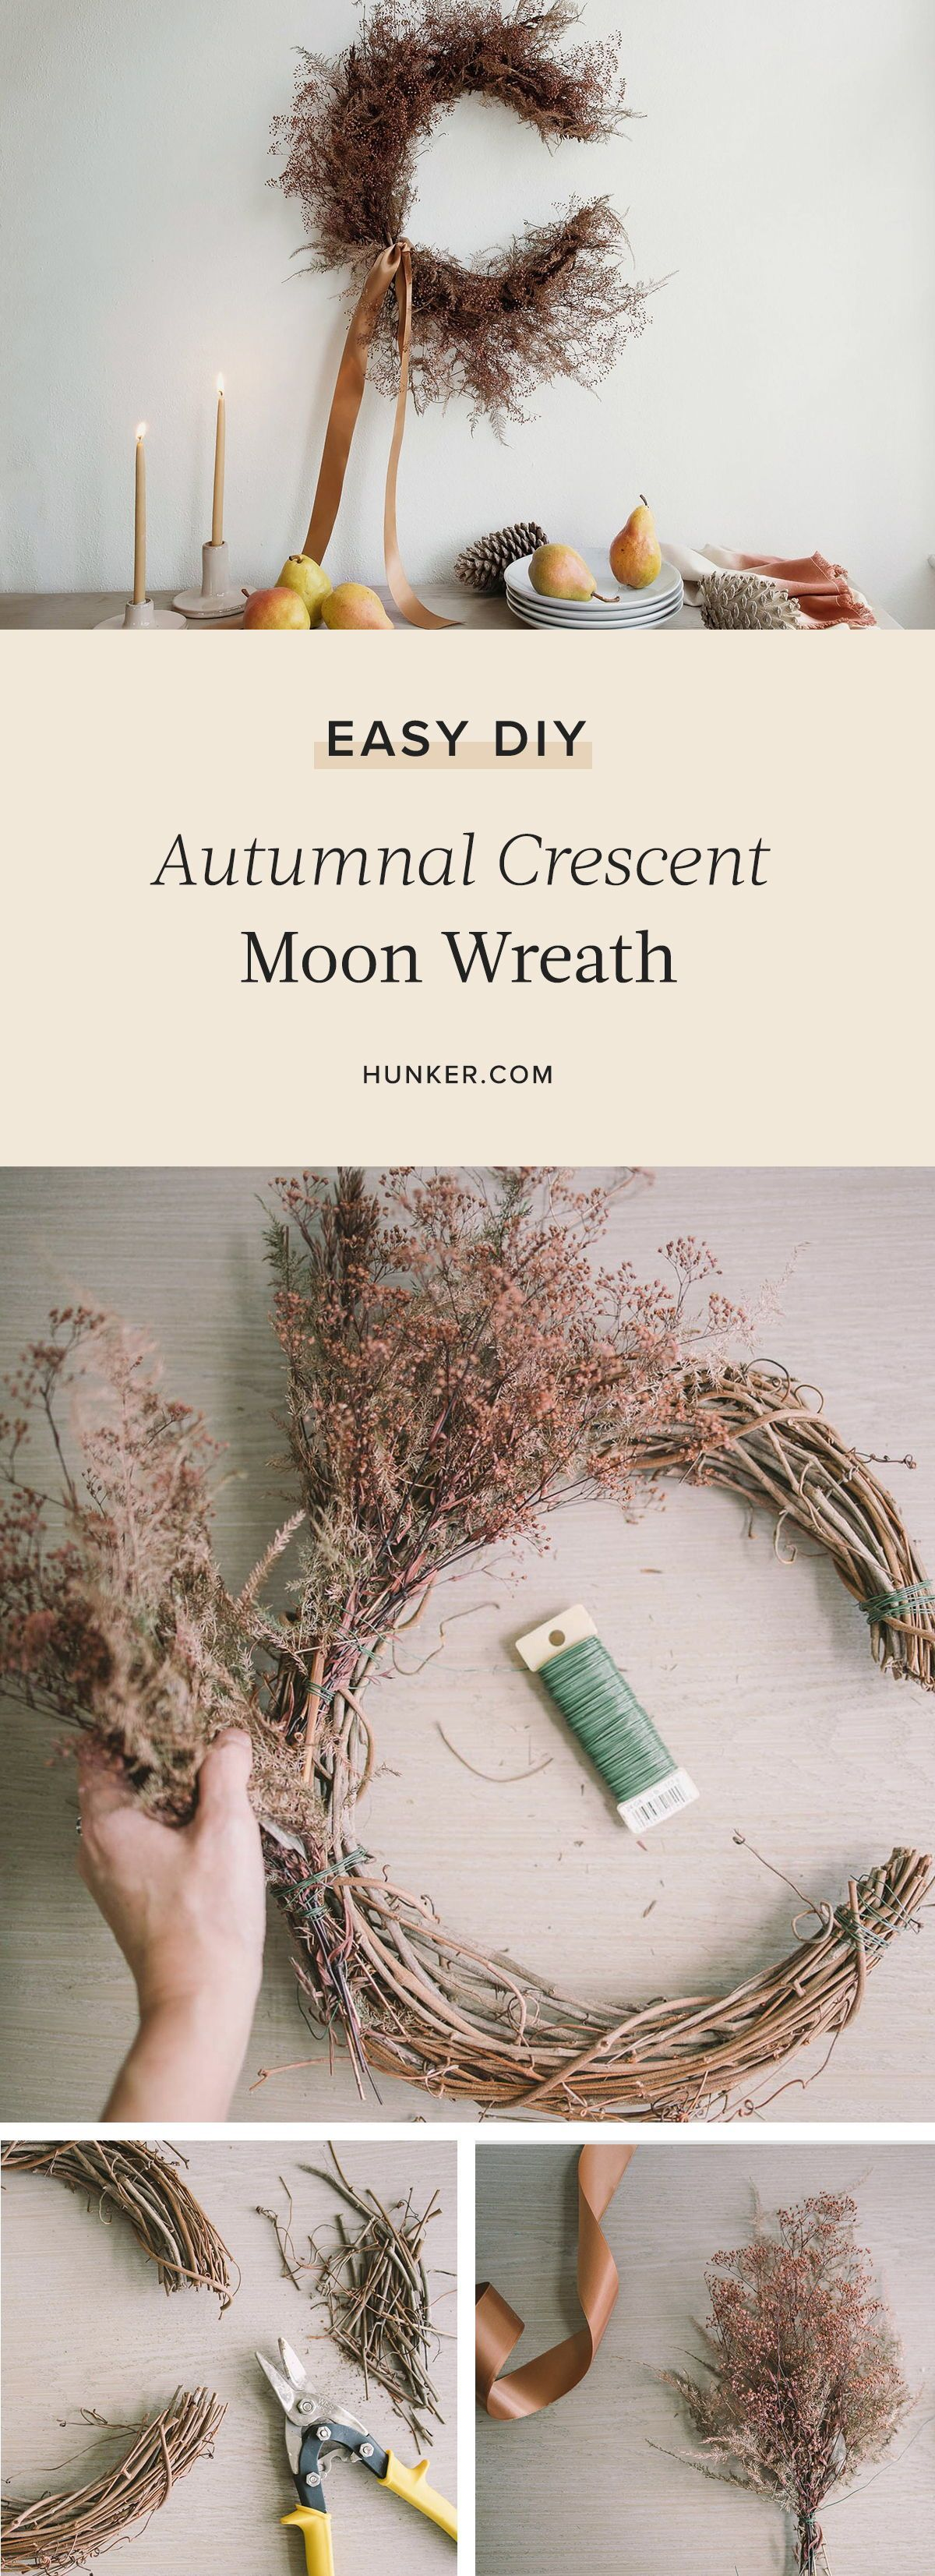 Between the witchy shape and earthy palette, this wreath will take your seasonal decor from Halloween straight through to Thanksgiving seamlessly. Here is how to make this DIY autumnal crescent moon wreath. #hunkerhome #crescentmoon #diy #thanksgivingdiy #diyideas #diydecor